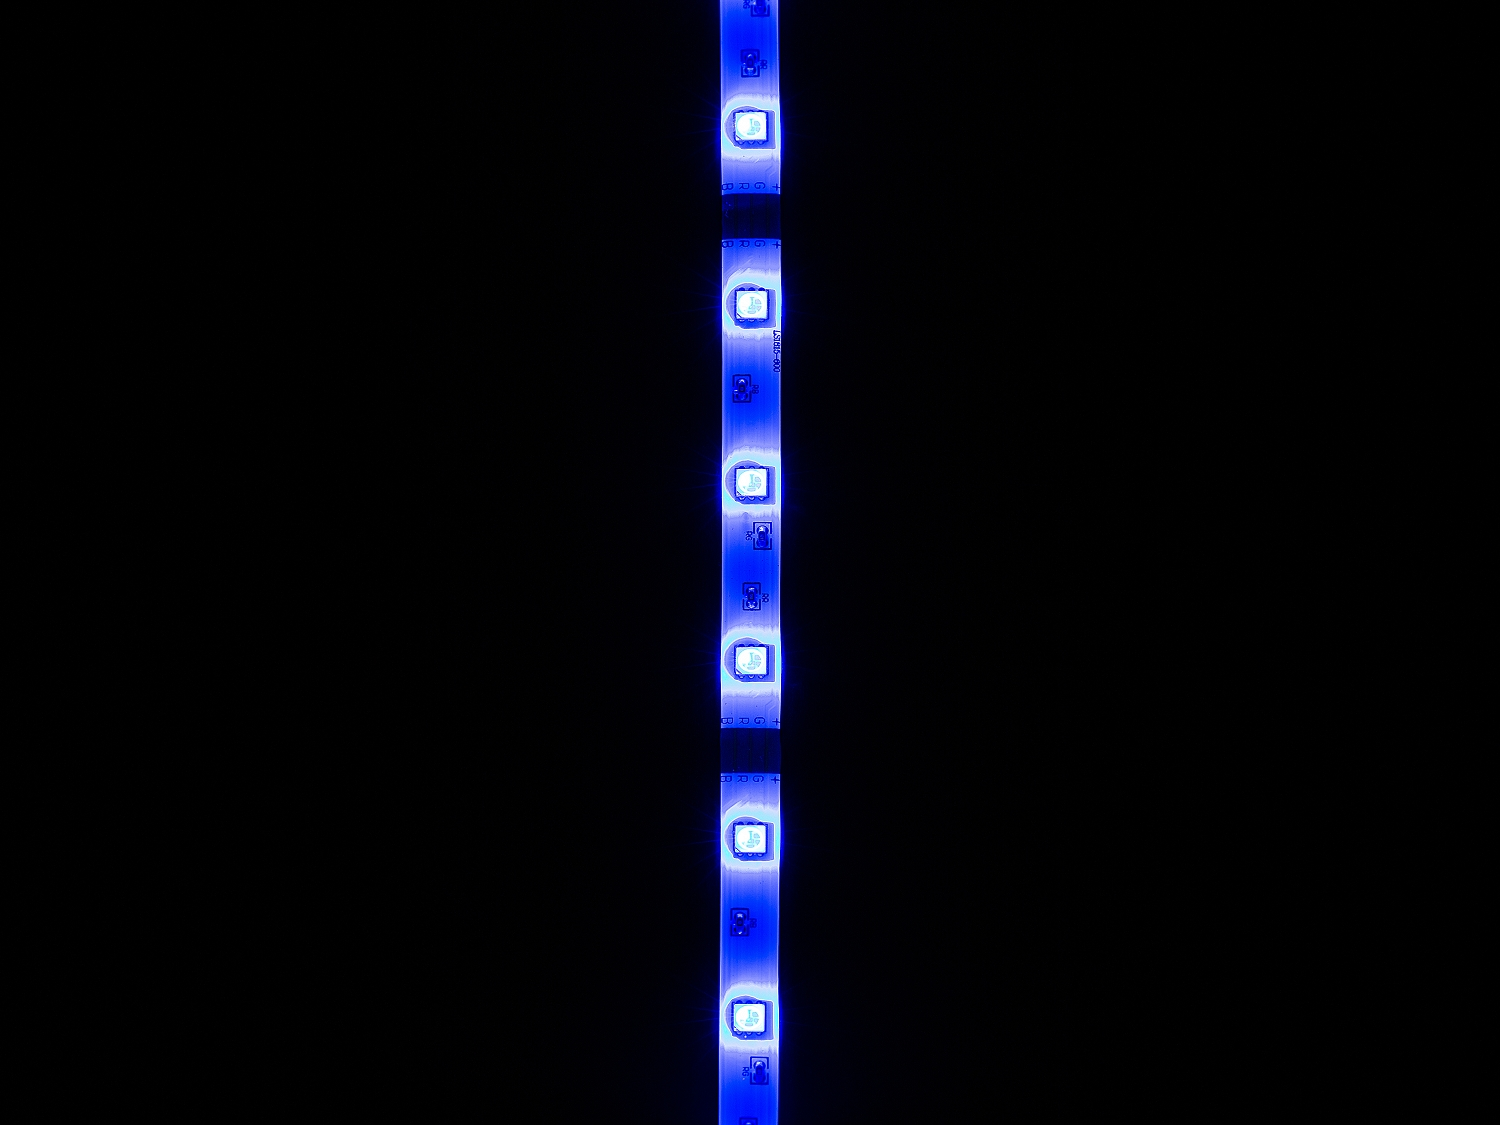 led strip 4x60cm lichterkette led streifen beleuchtung lichtschlauch 16 farben ebay. Black Bedroom Furniture Sets. Home Design Ideas